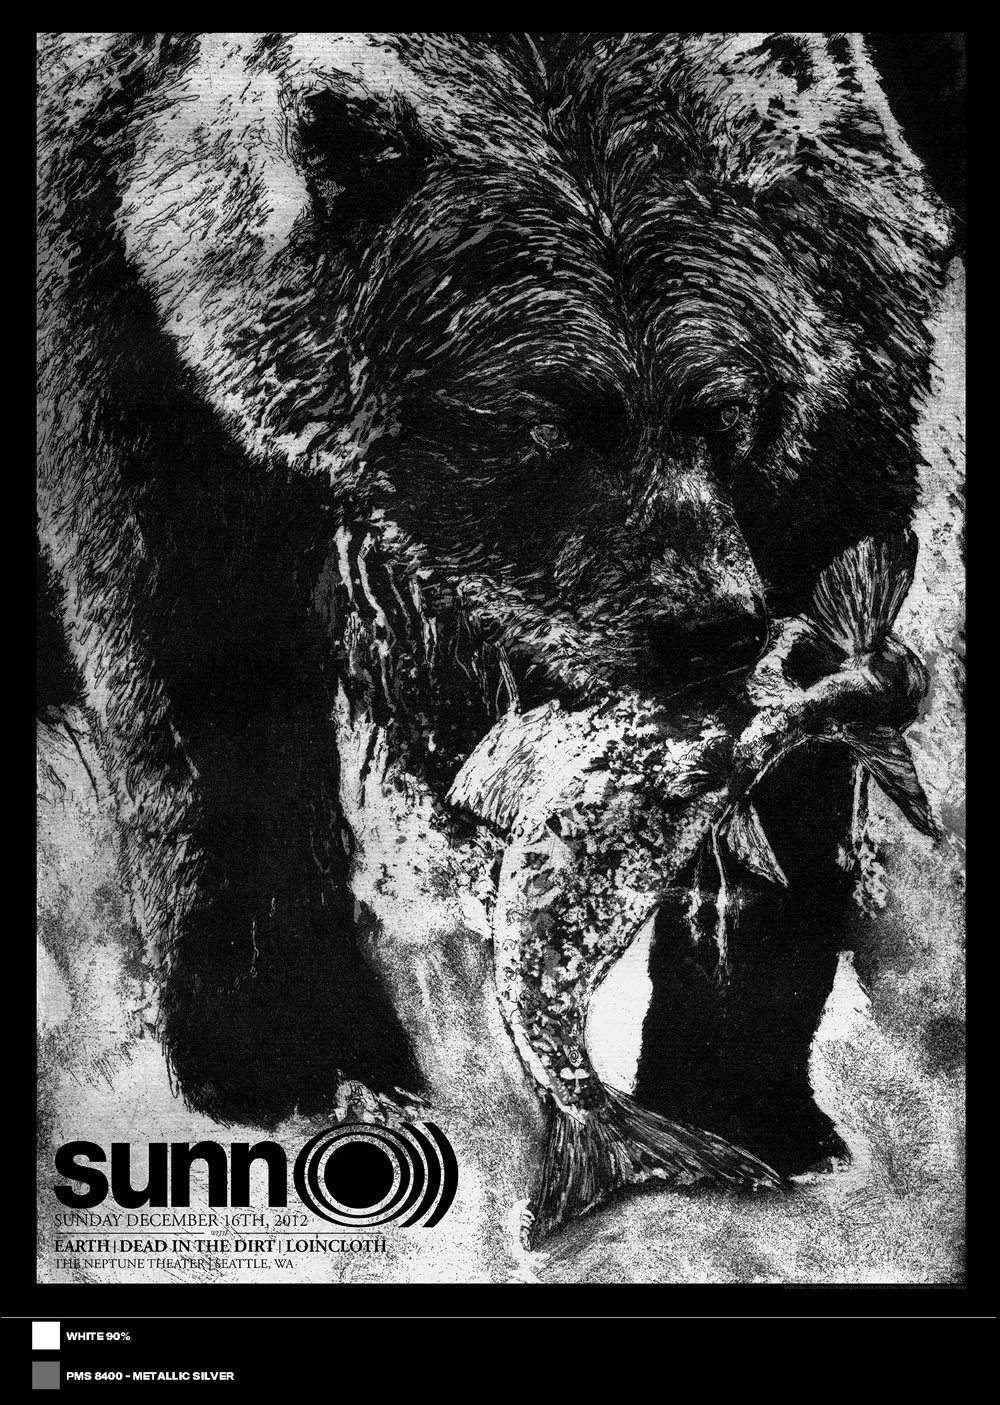 EARTH added to SUNN O)))'s 16th December Seattle date